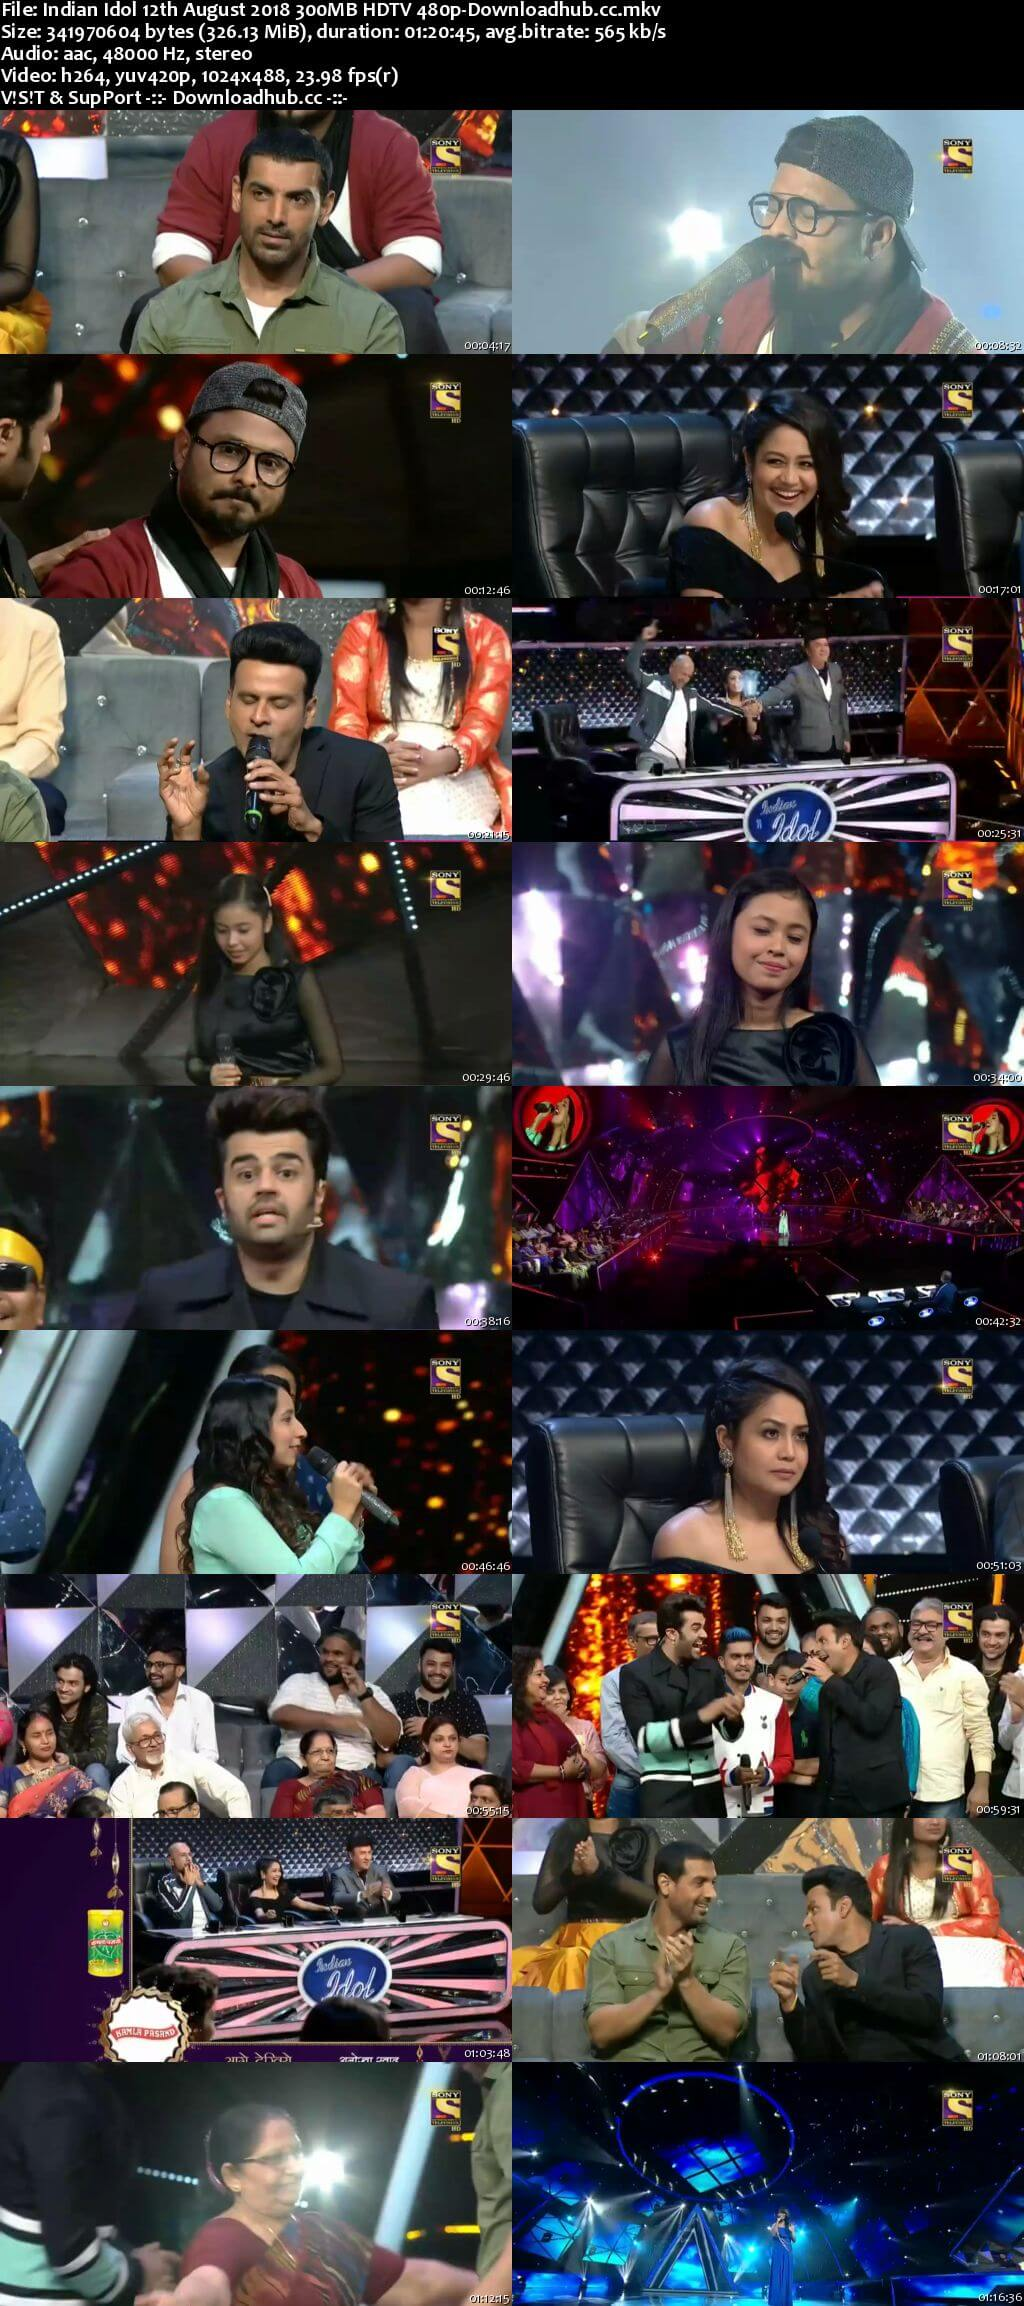 Indian Idol 12 August 2018 Episode 12 HDTV 480p